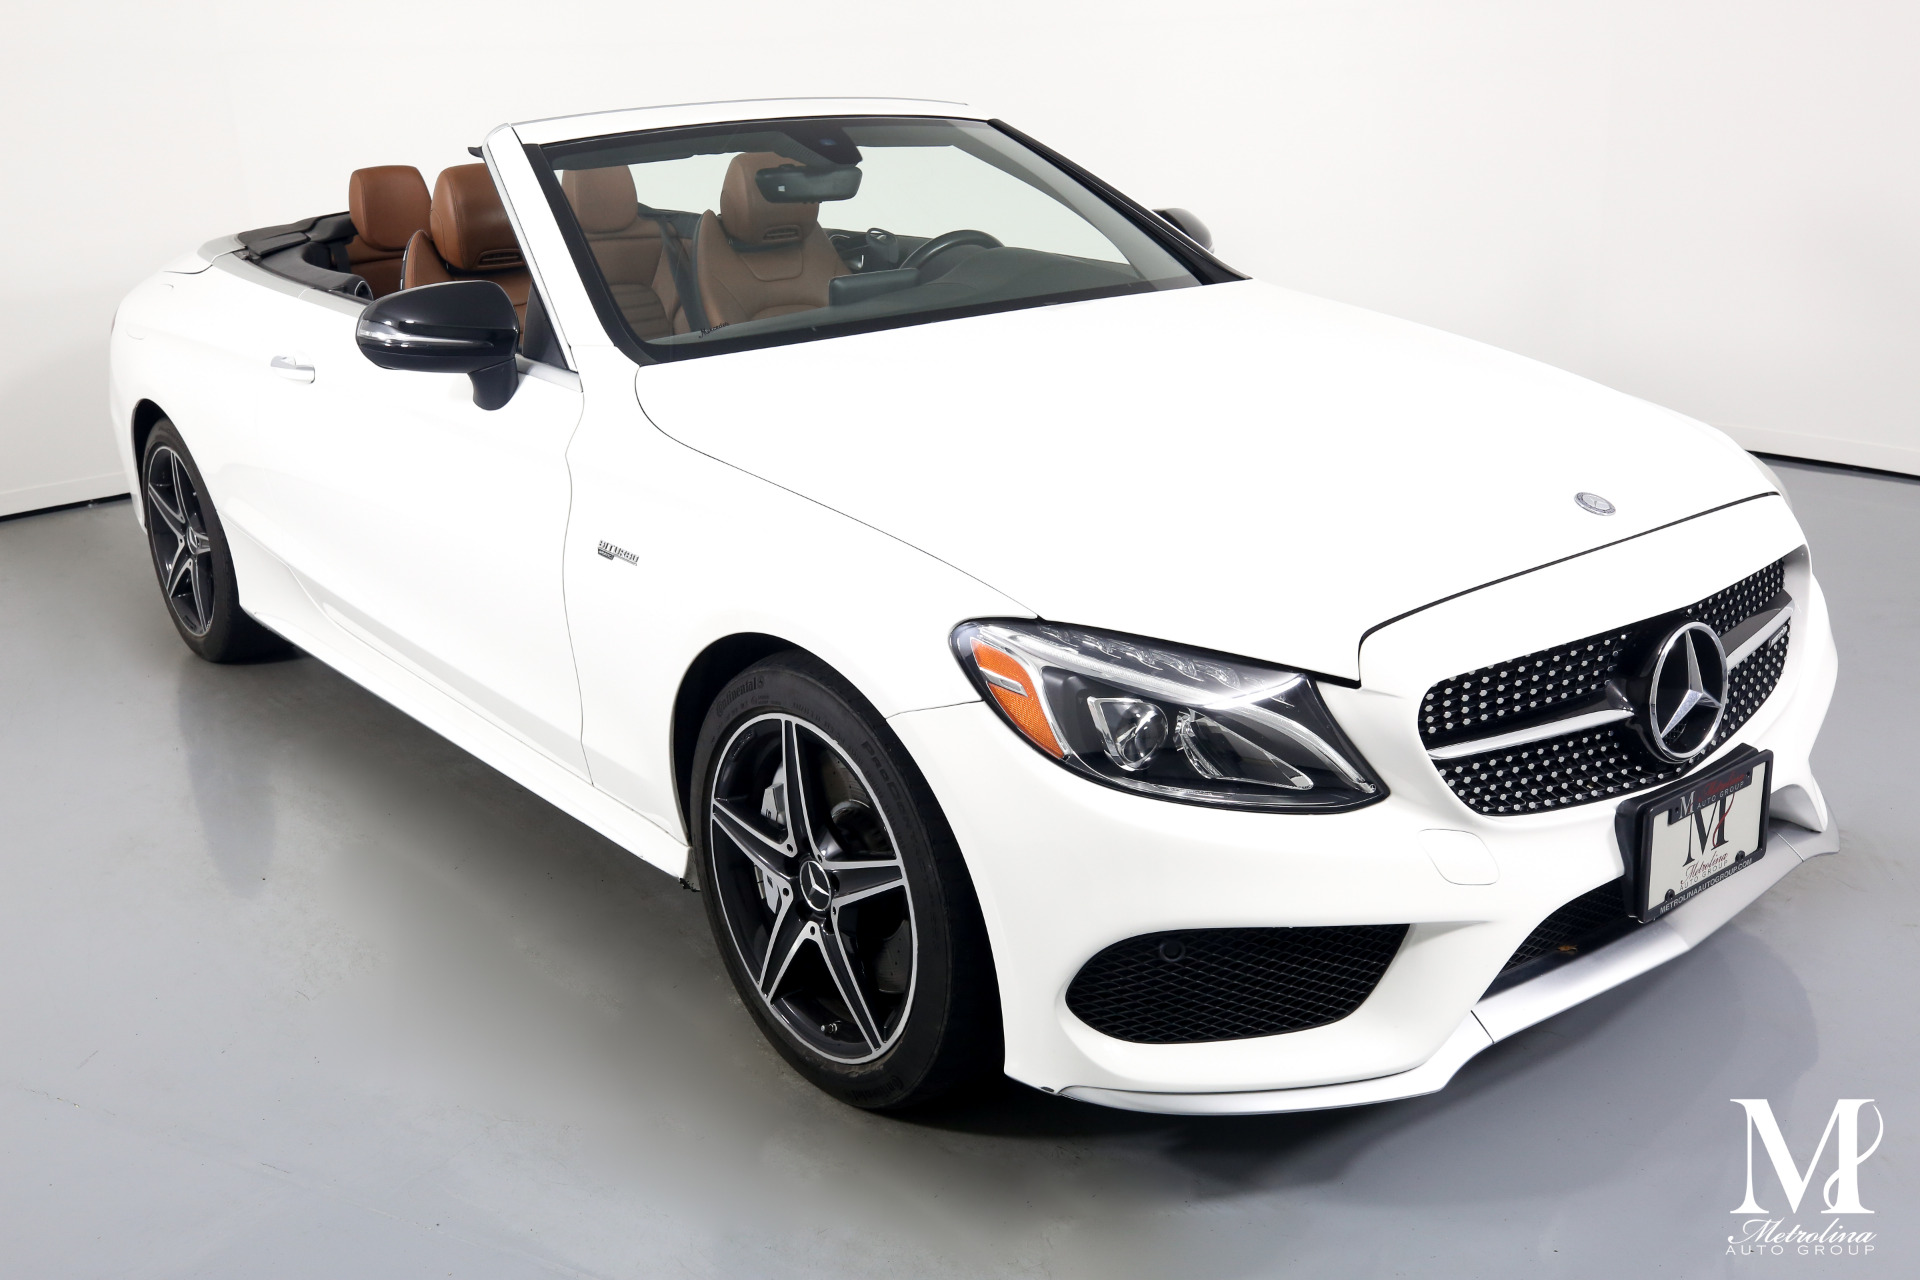 Used 2017 Mercedes-Benz C-Class AMG C 43 for sale $59,996 at Metrolina Auto Group in Charlotte NC 28217 - 3